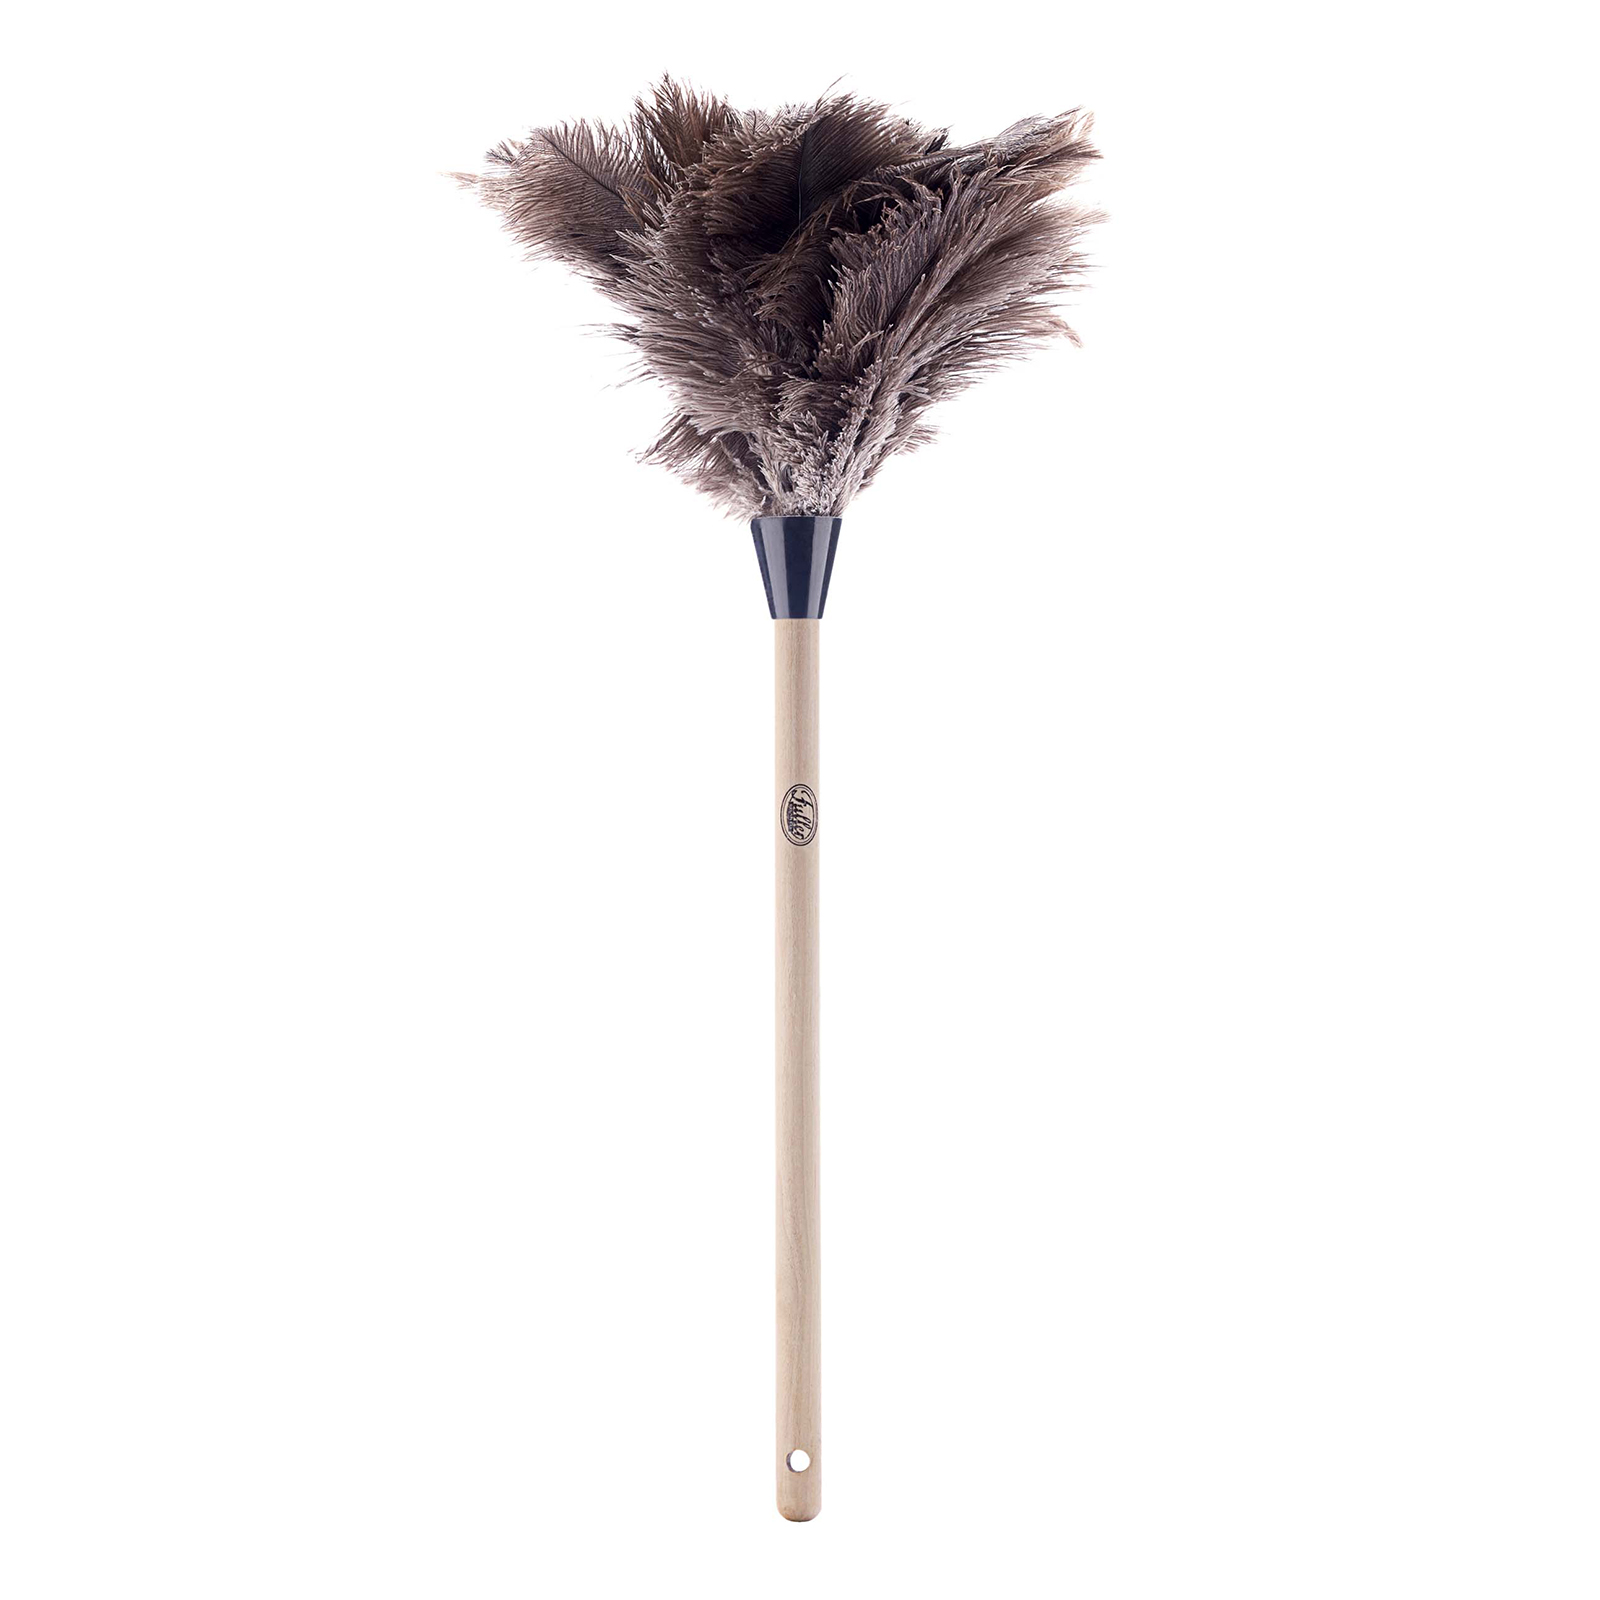 Fuller Brush 1906 Ostrich Feather Duster, Brown